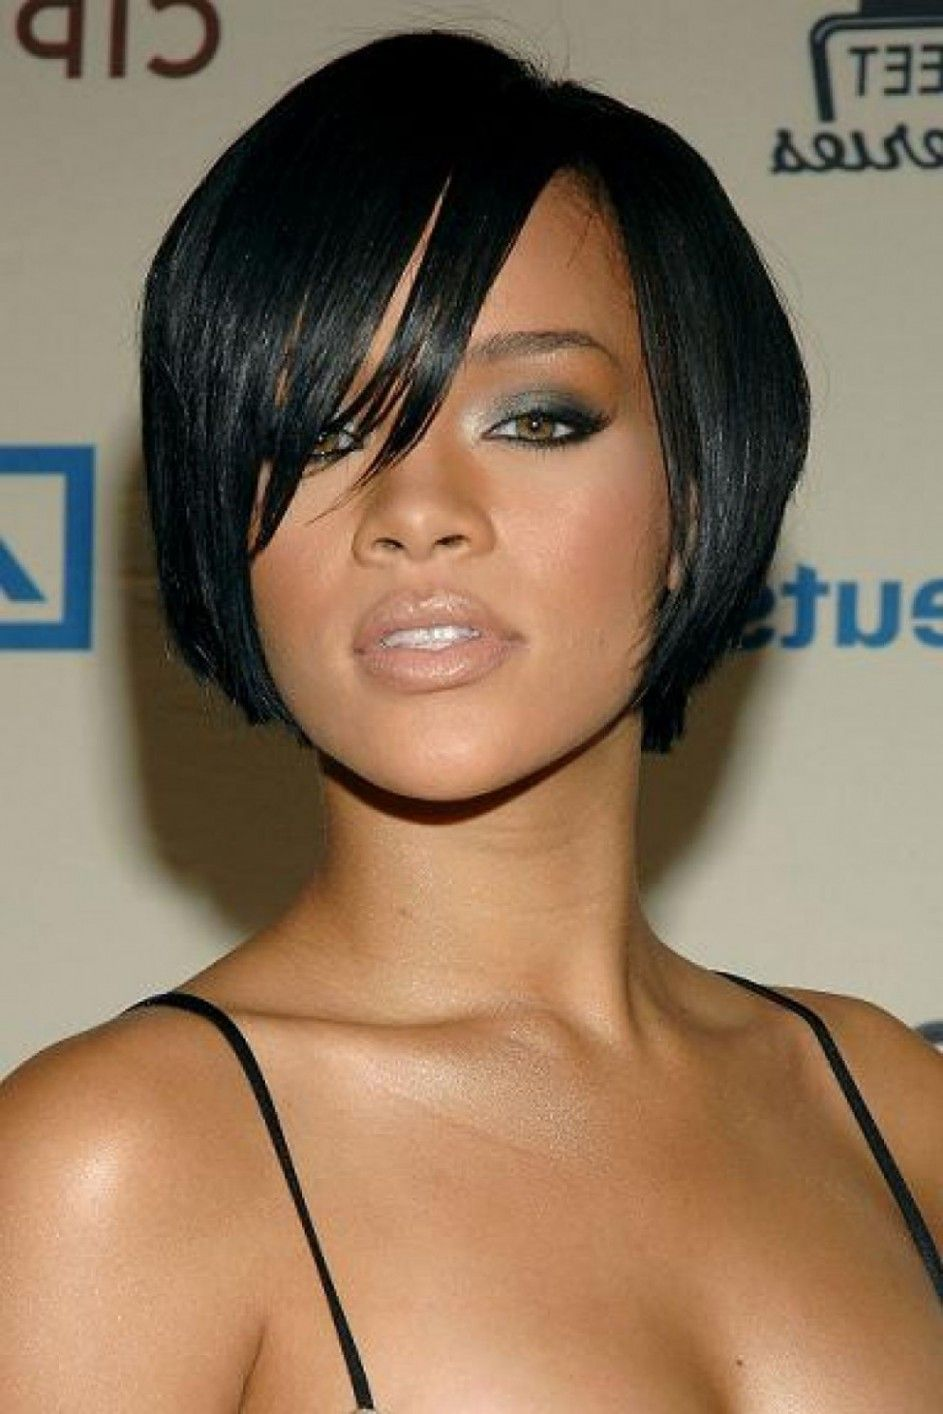 Best African American Bob Hairstyles Awesome Bob Hairstyles For African American 5 Bob Hai Hairstyles For Thin Hair Short Bob Hairstyles How To Curl Short Hair